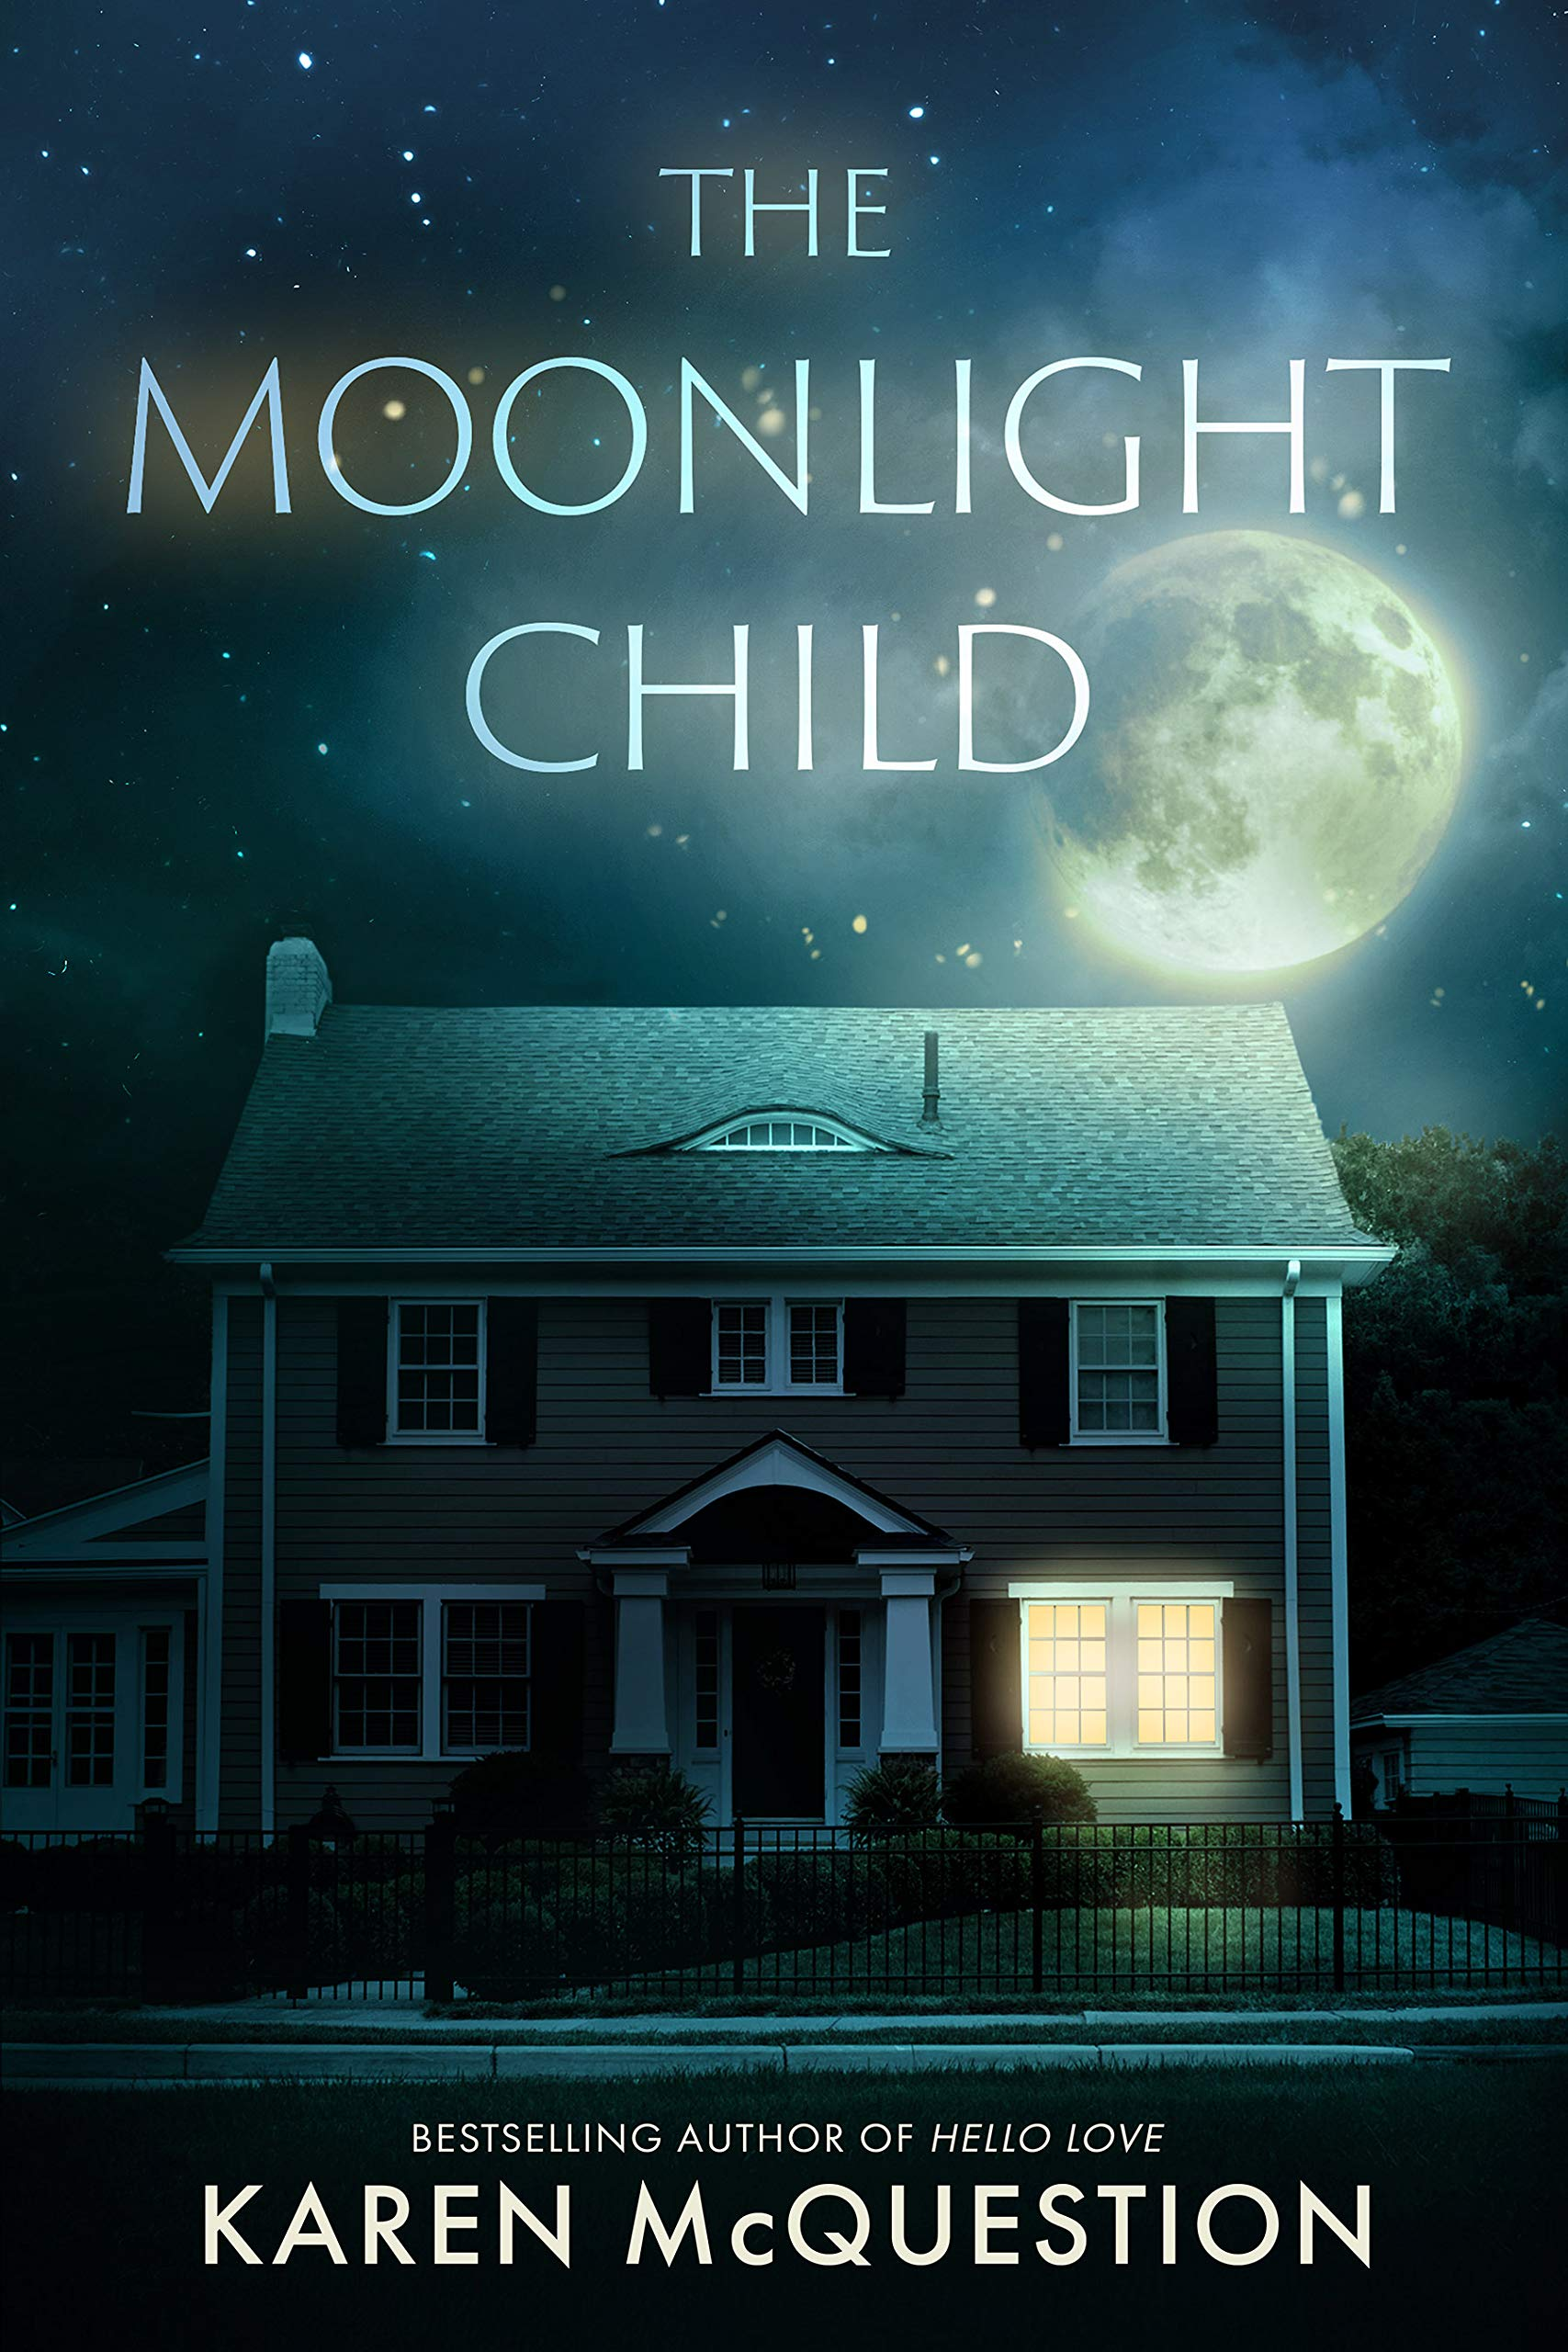 Cover image of The Moonlight Child by Karen McQuestion